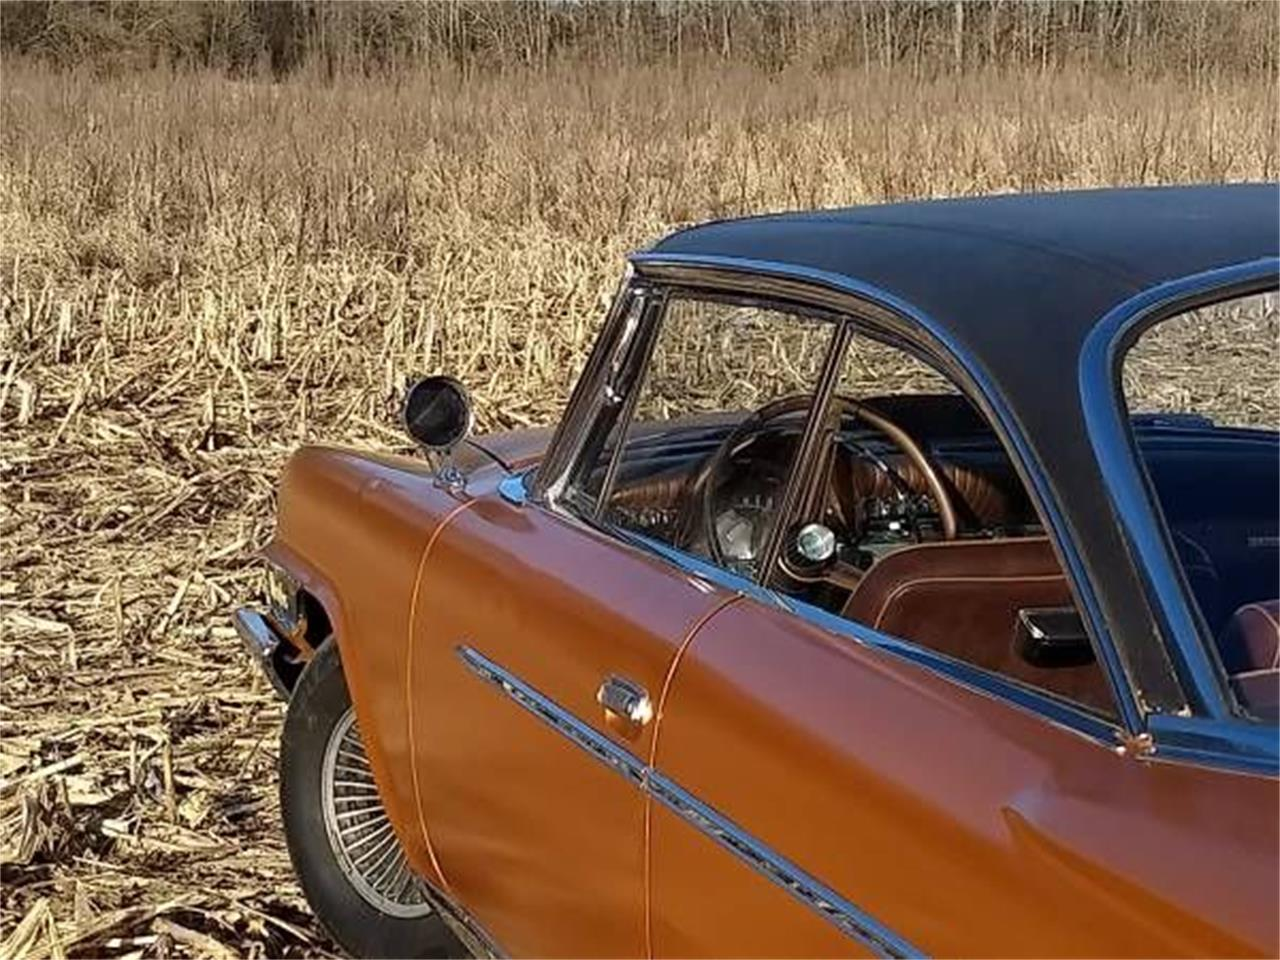 1962 Chrysler 300 for sale in Cadillac, MI – photo 14